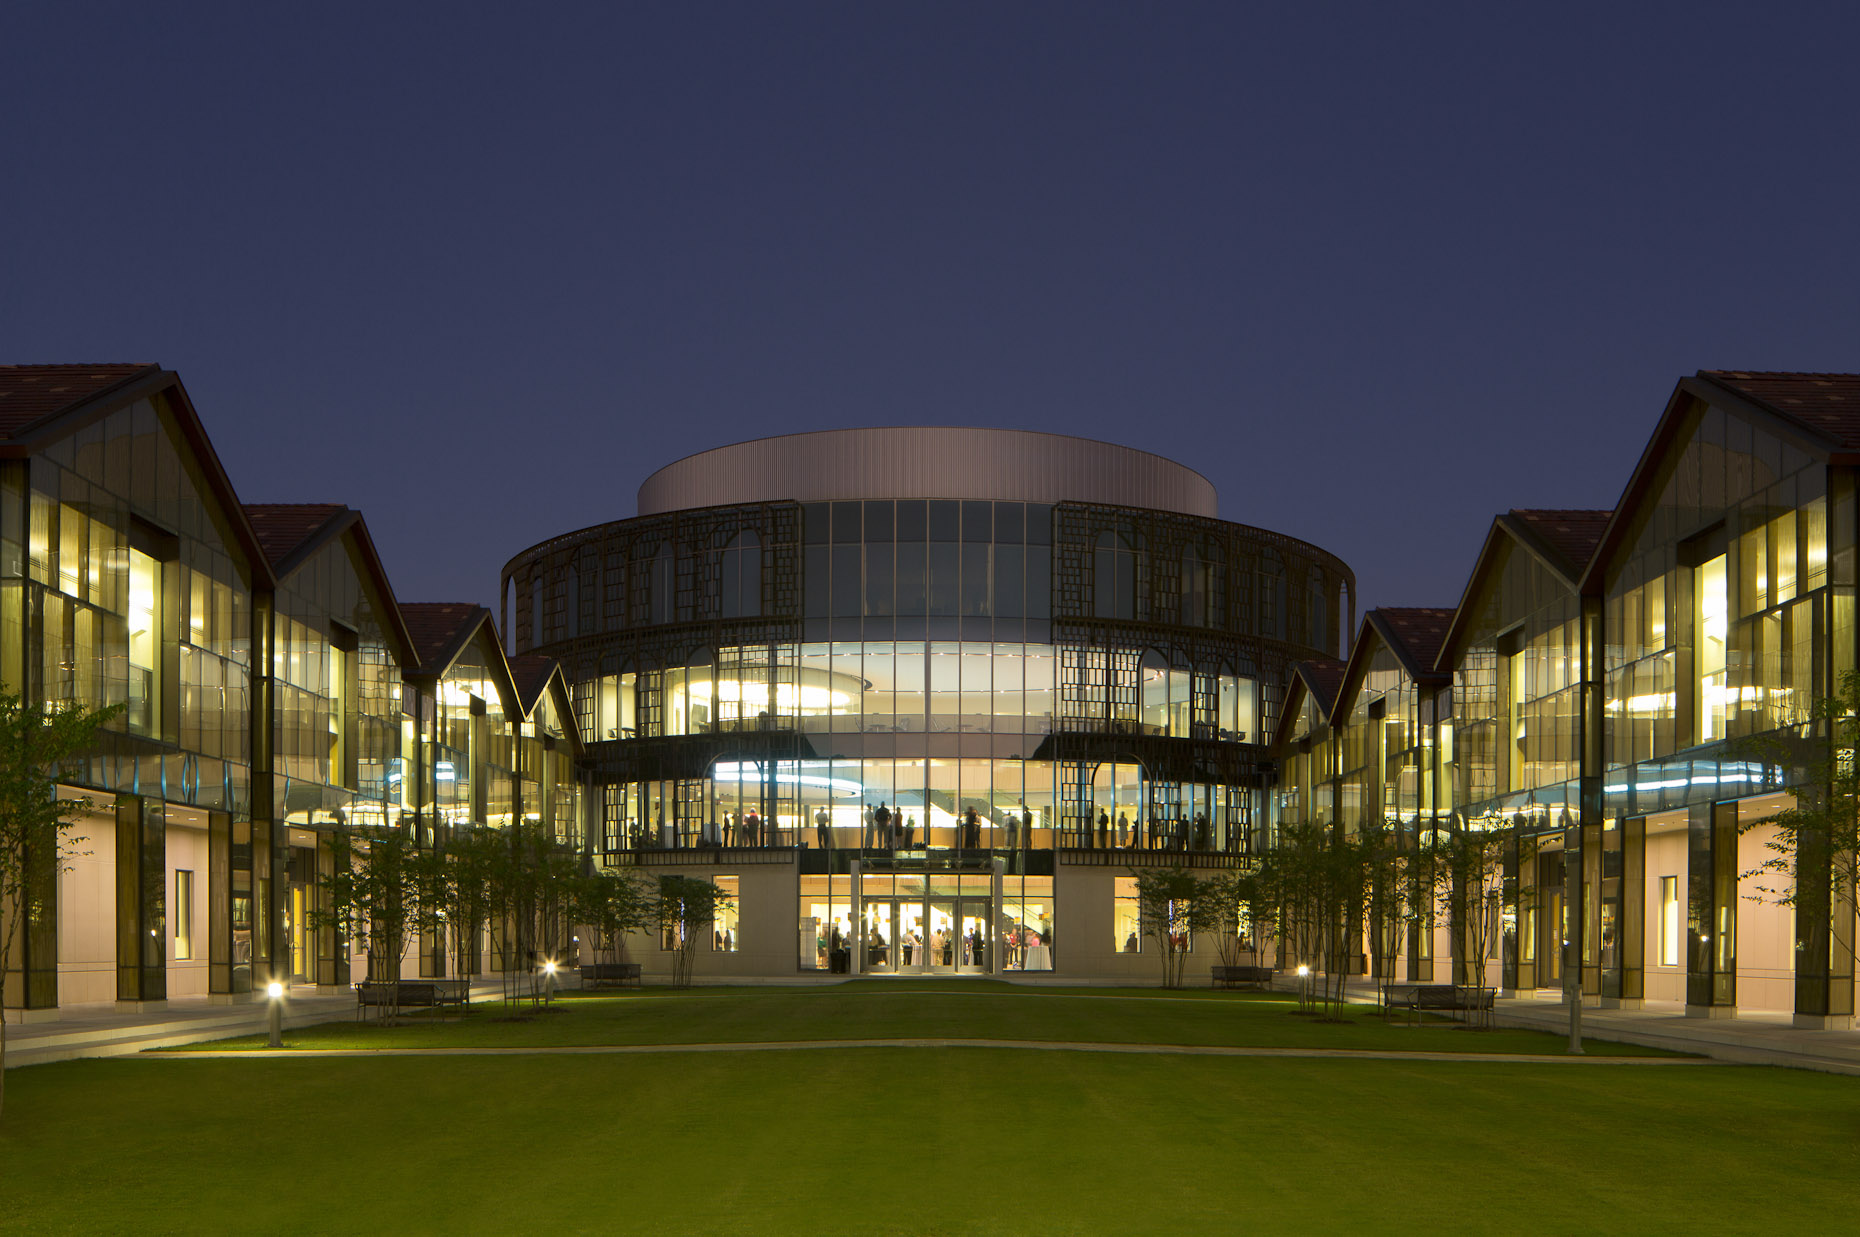 Ej Ourso College of Business at Louisiana State University by Ikon.5 Architects